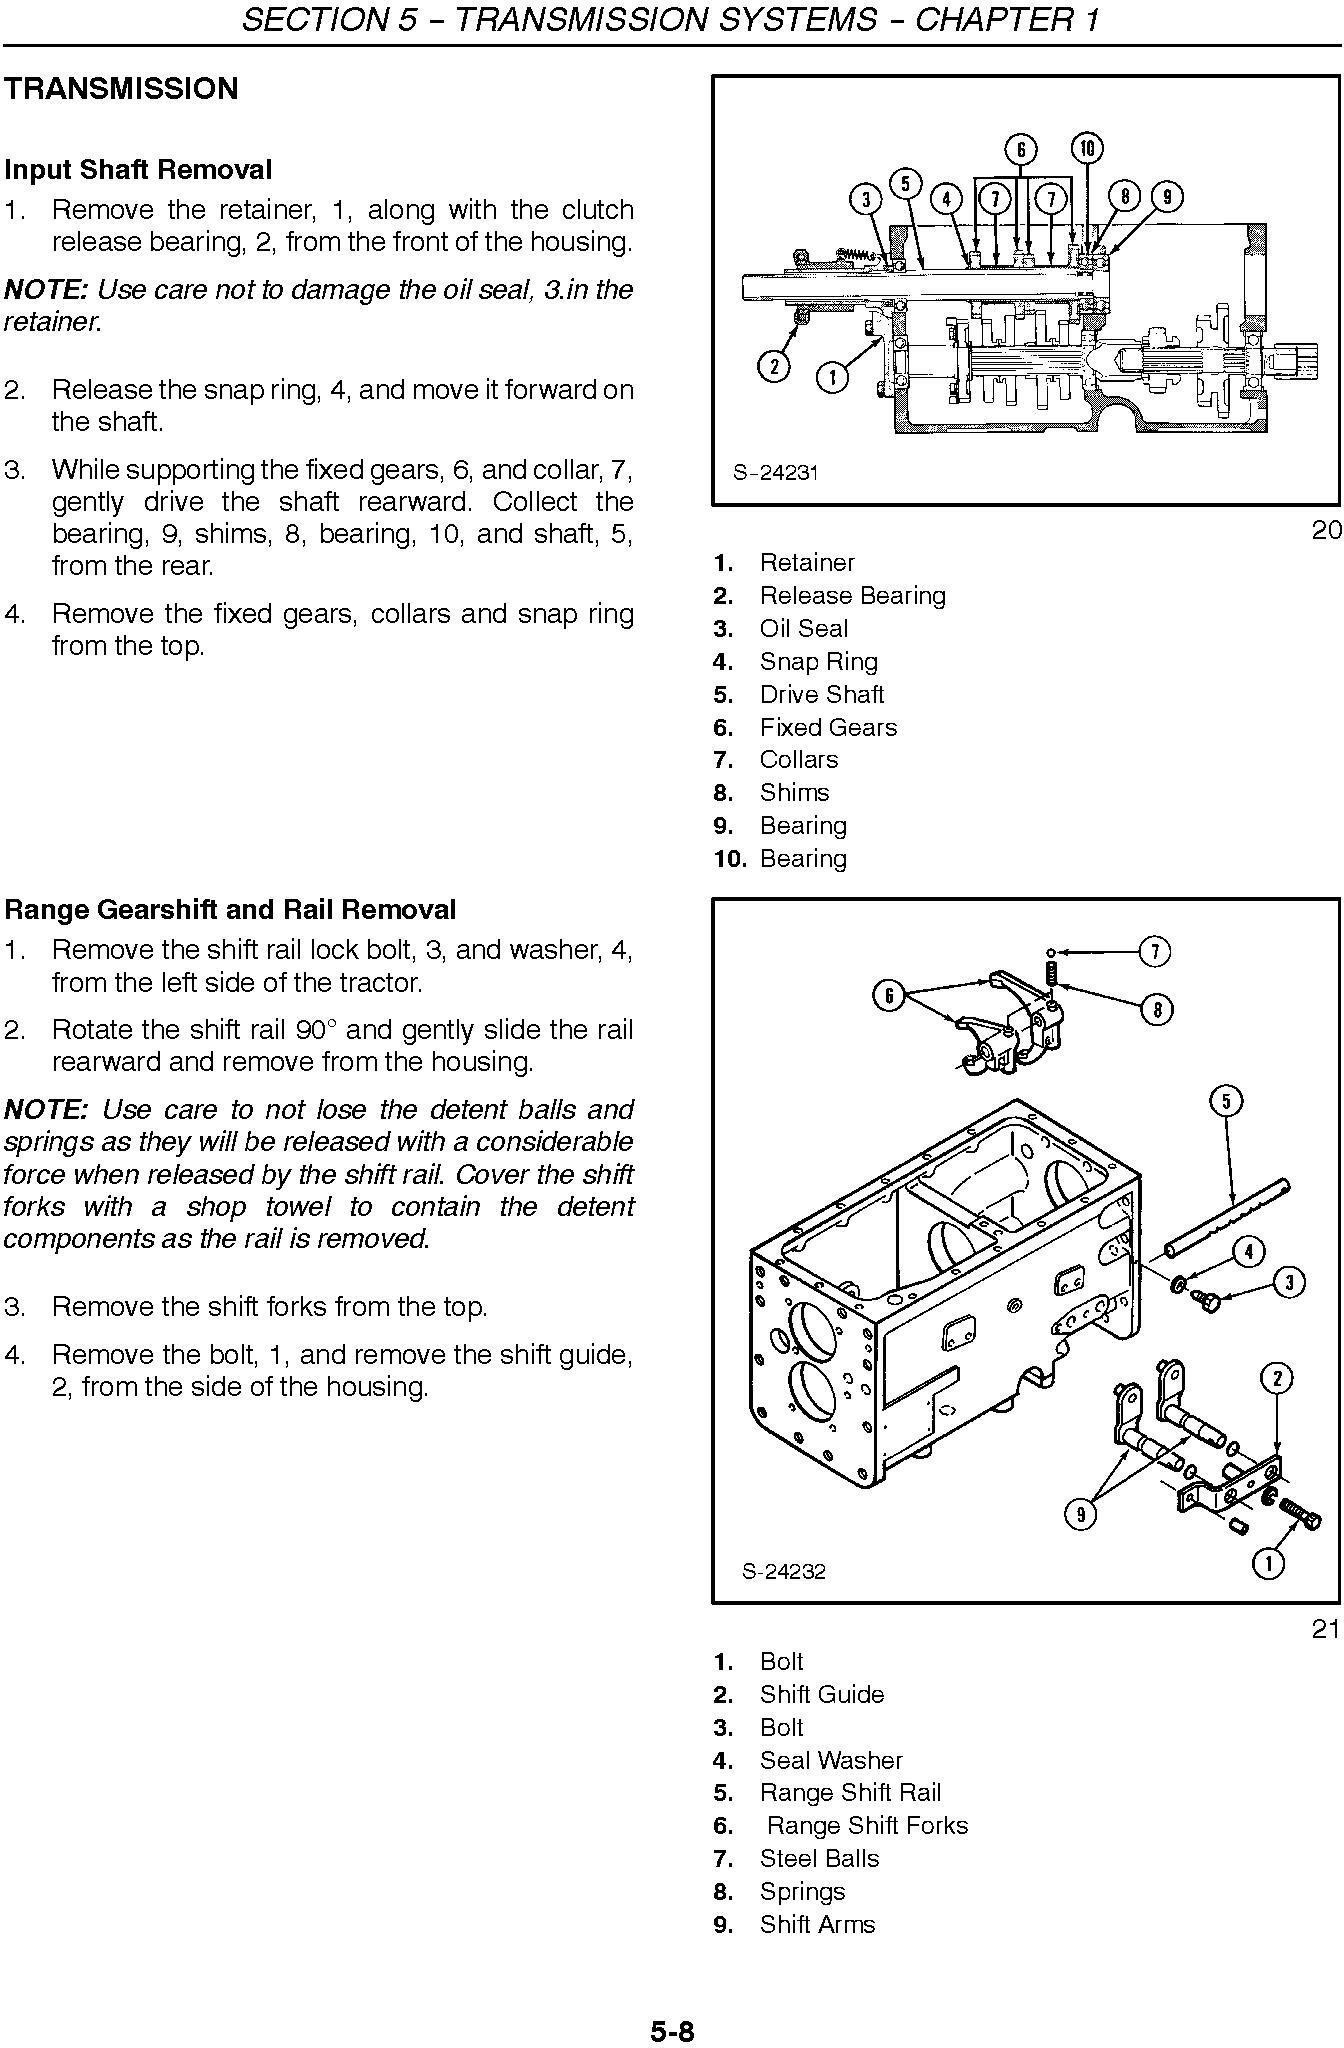 New Holland 3415 Compact Tractor Service Repair Manual - 2